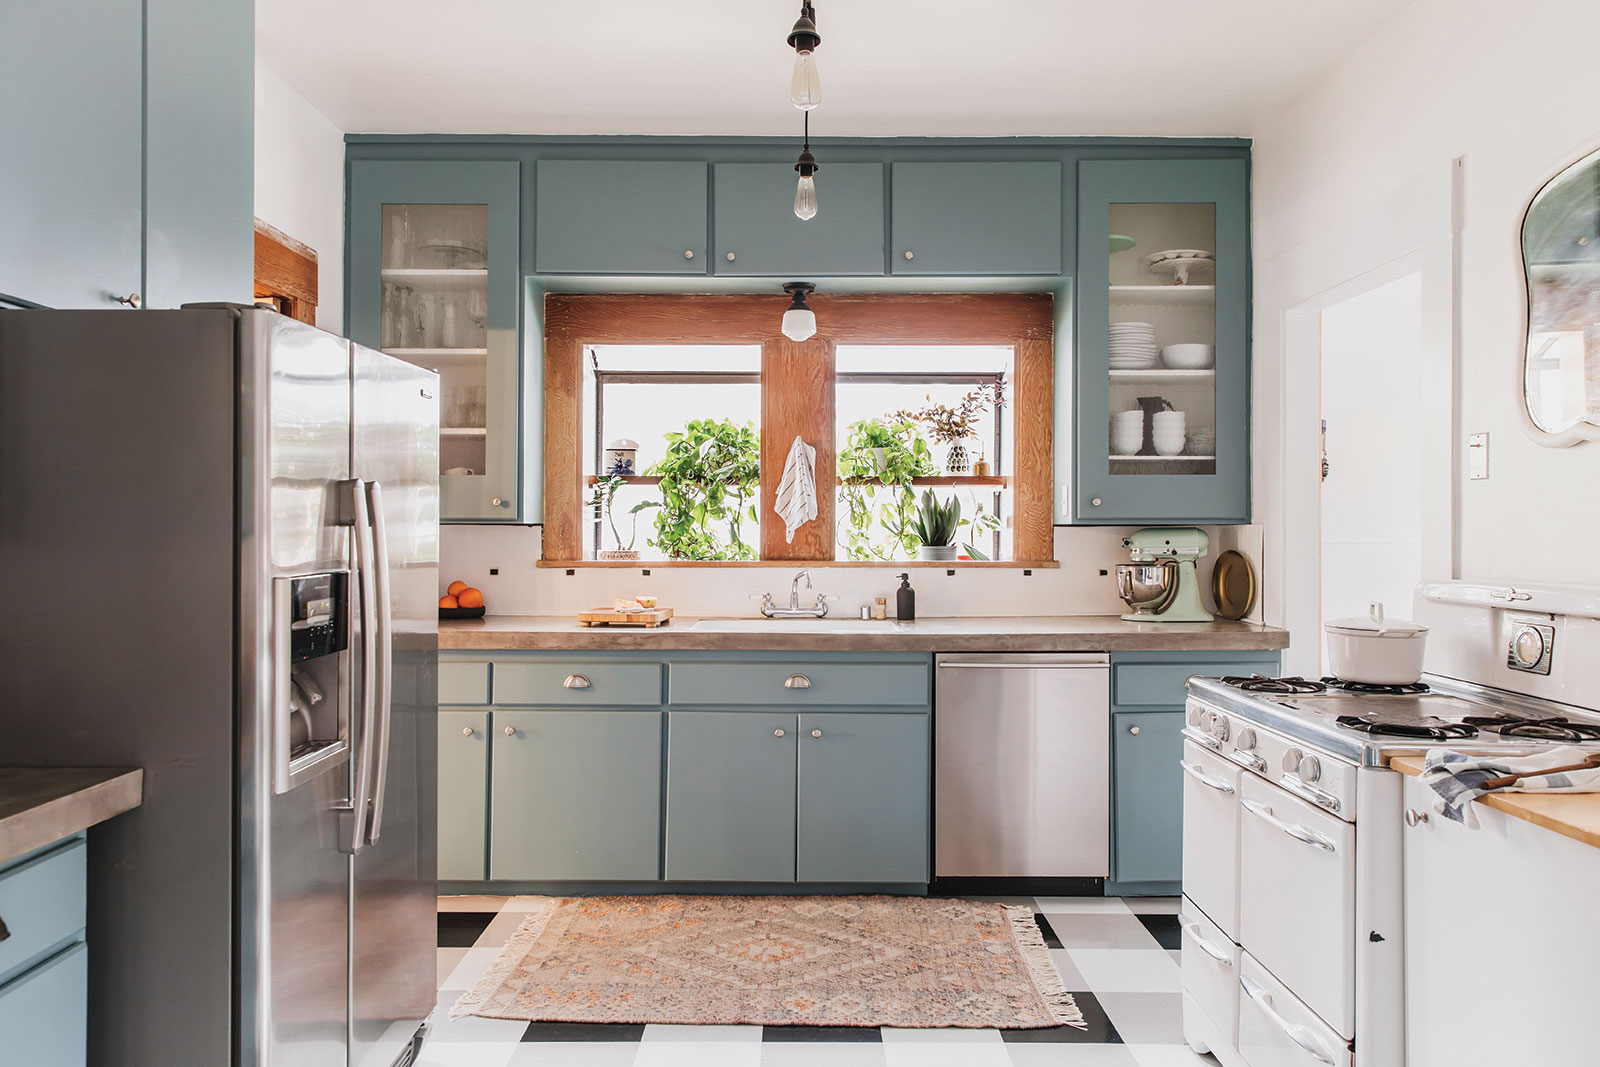 DIY kitchen changes ashley goldman's historic retro kitchen with a muted flatweave rug